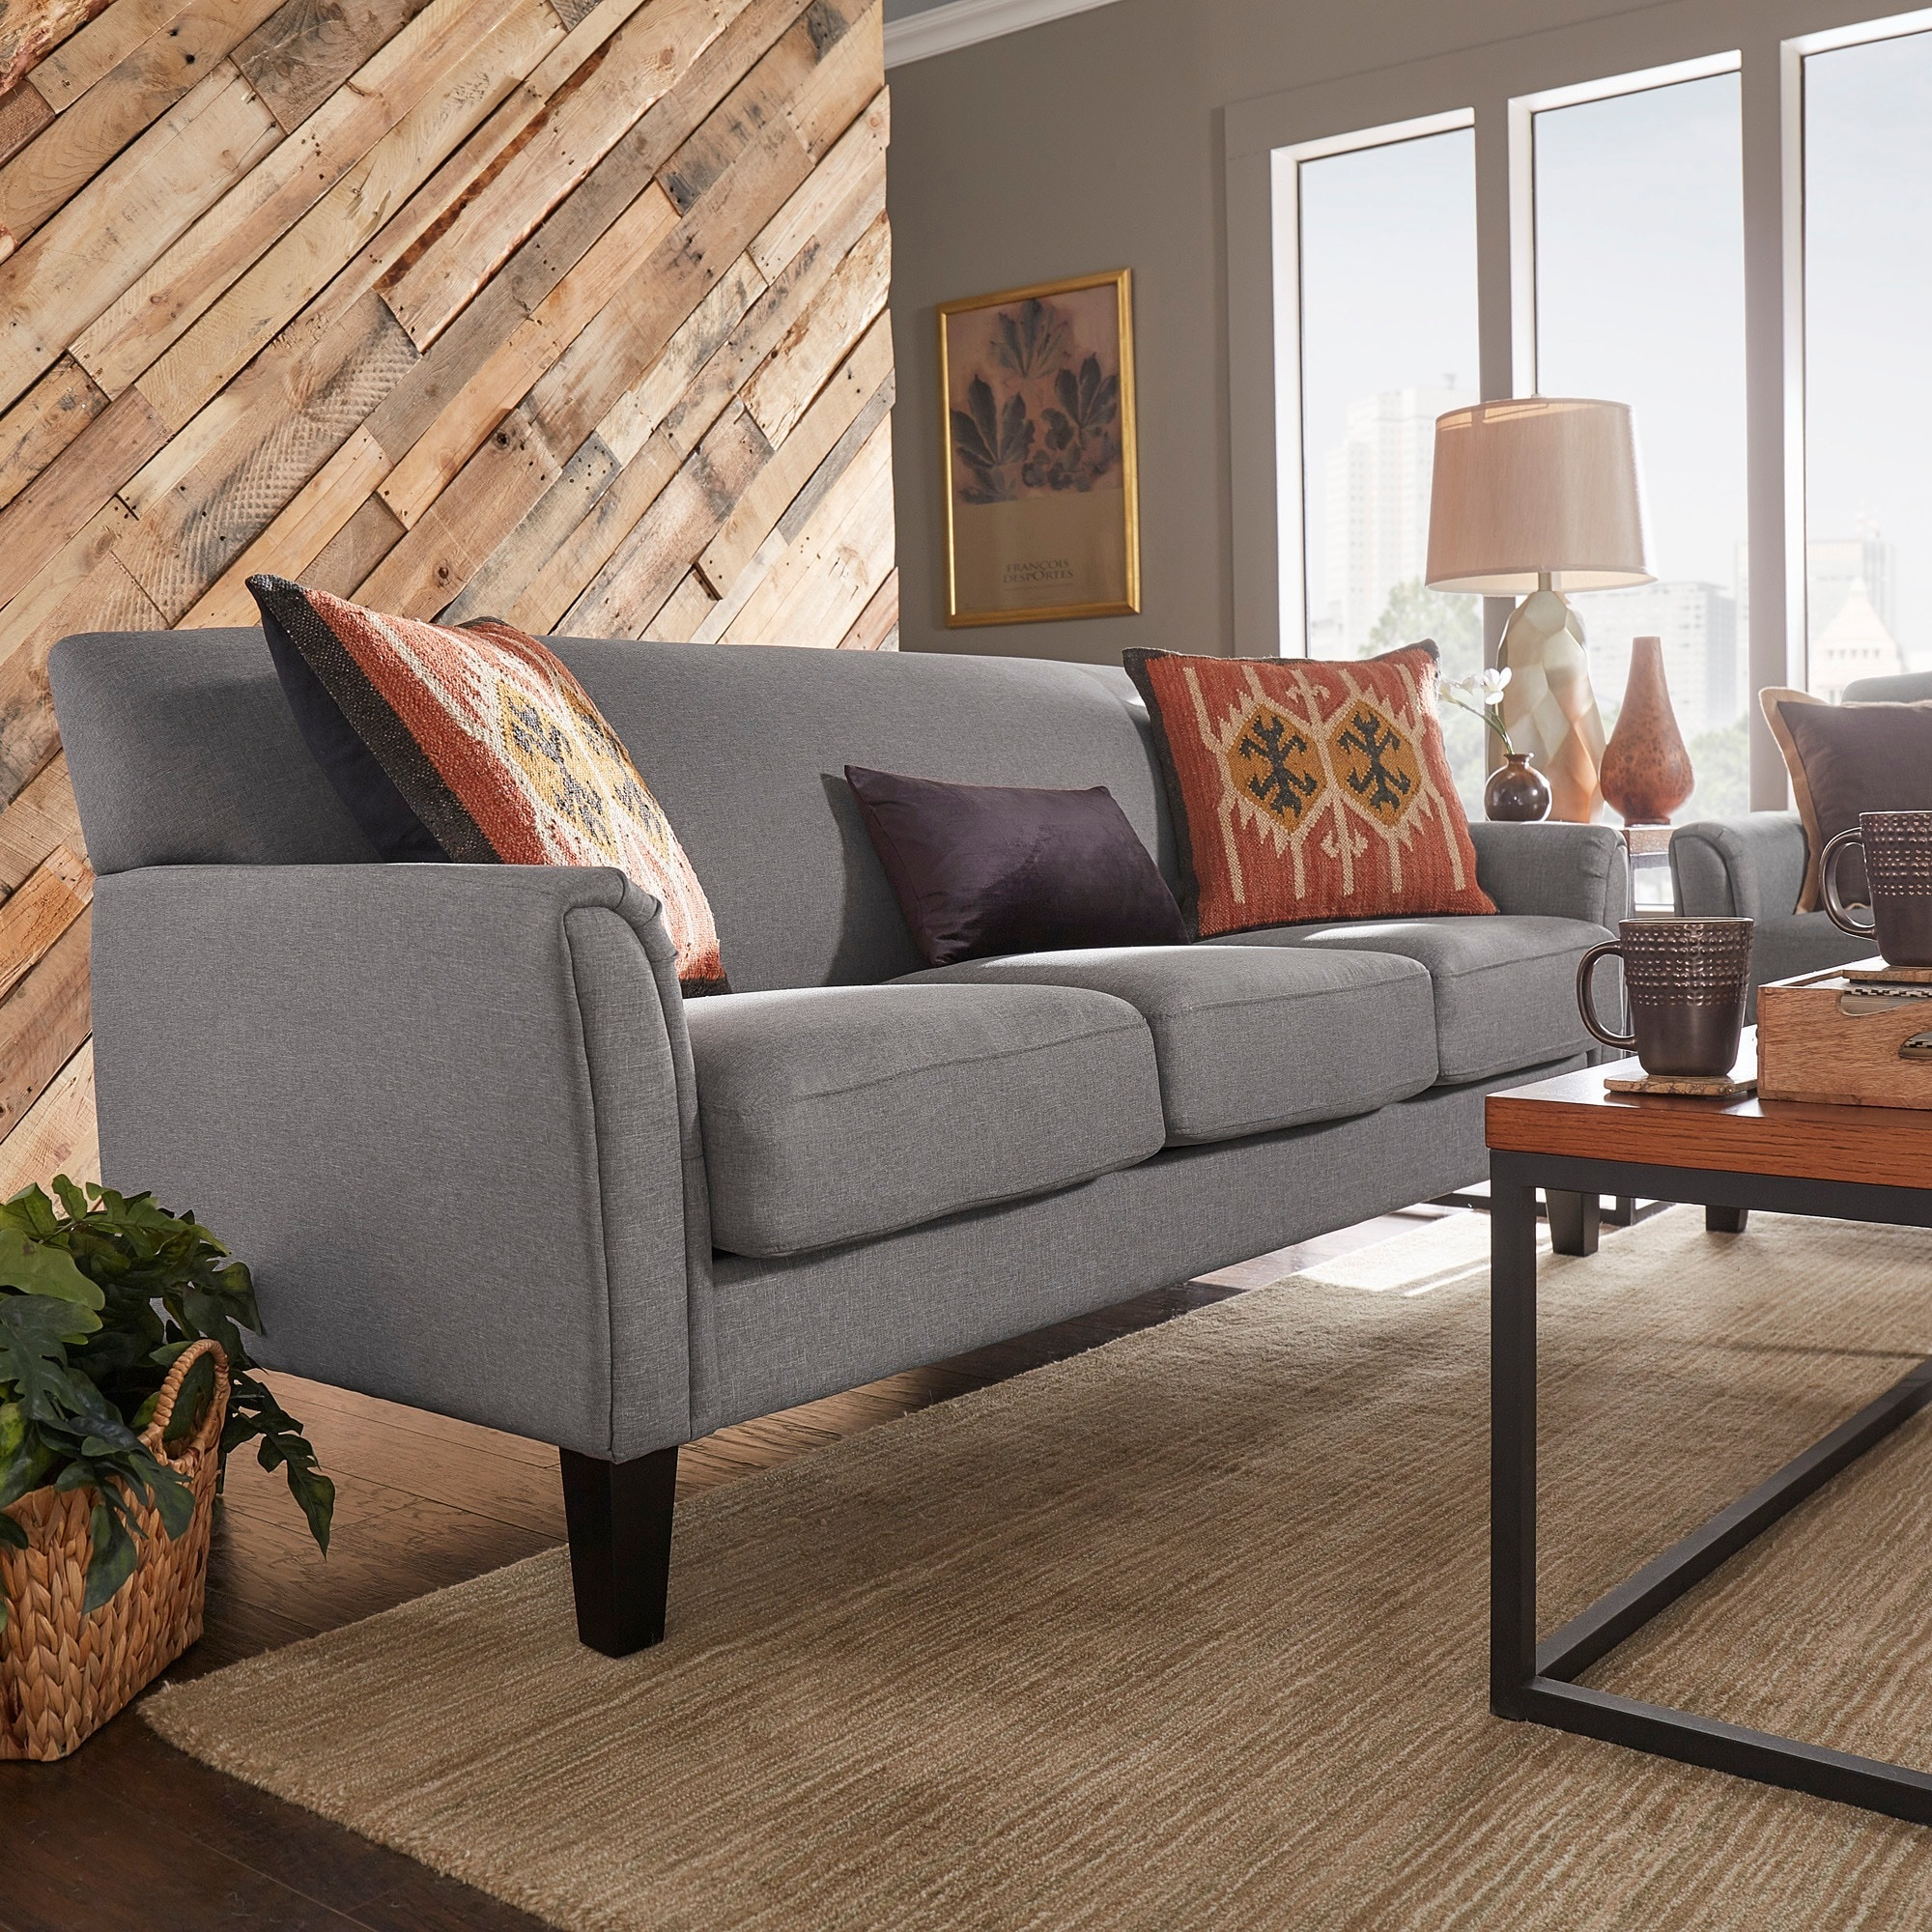 Shop uptown modern sofa by inspire q classic free shipping today overstock com 3911915